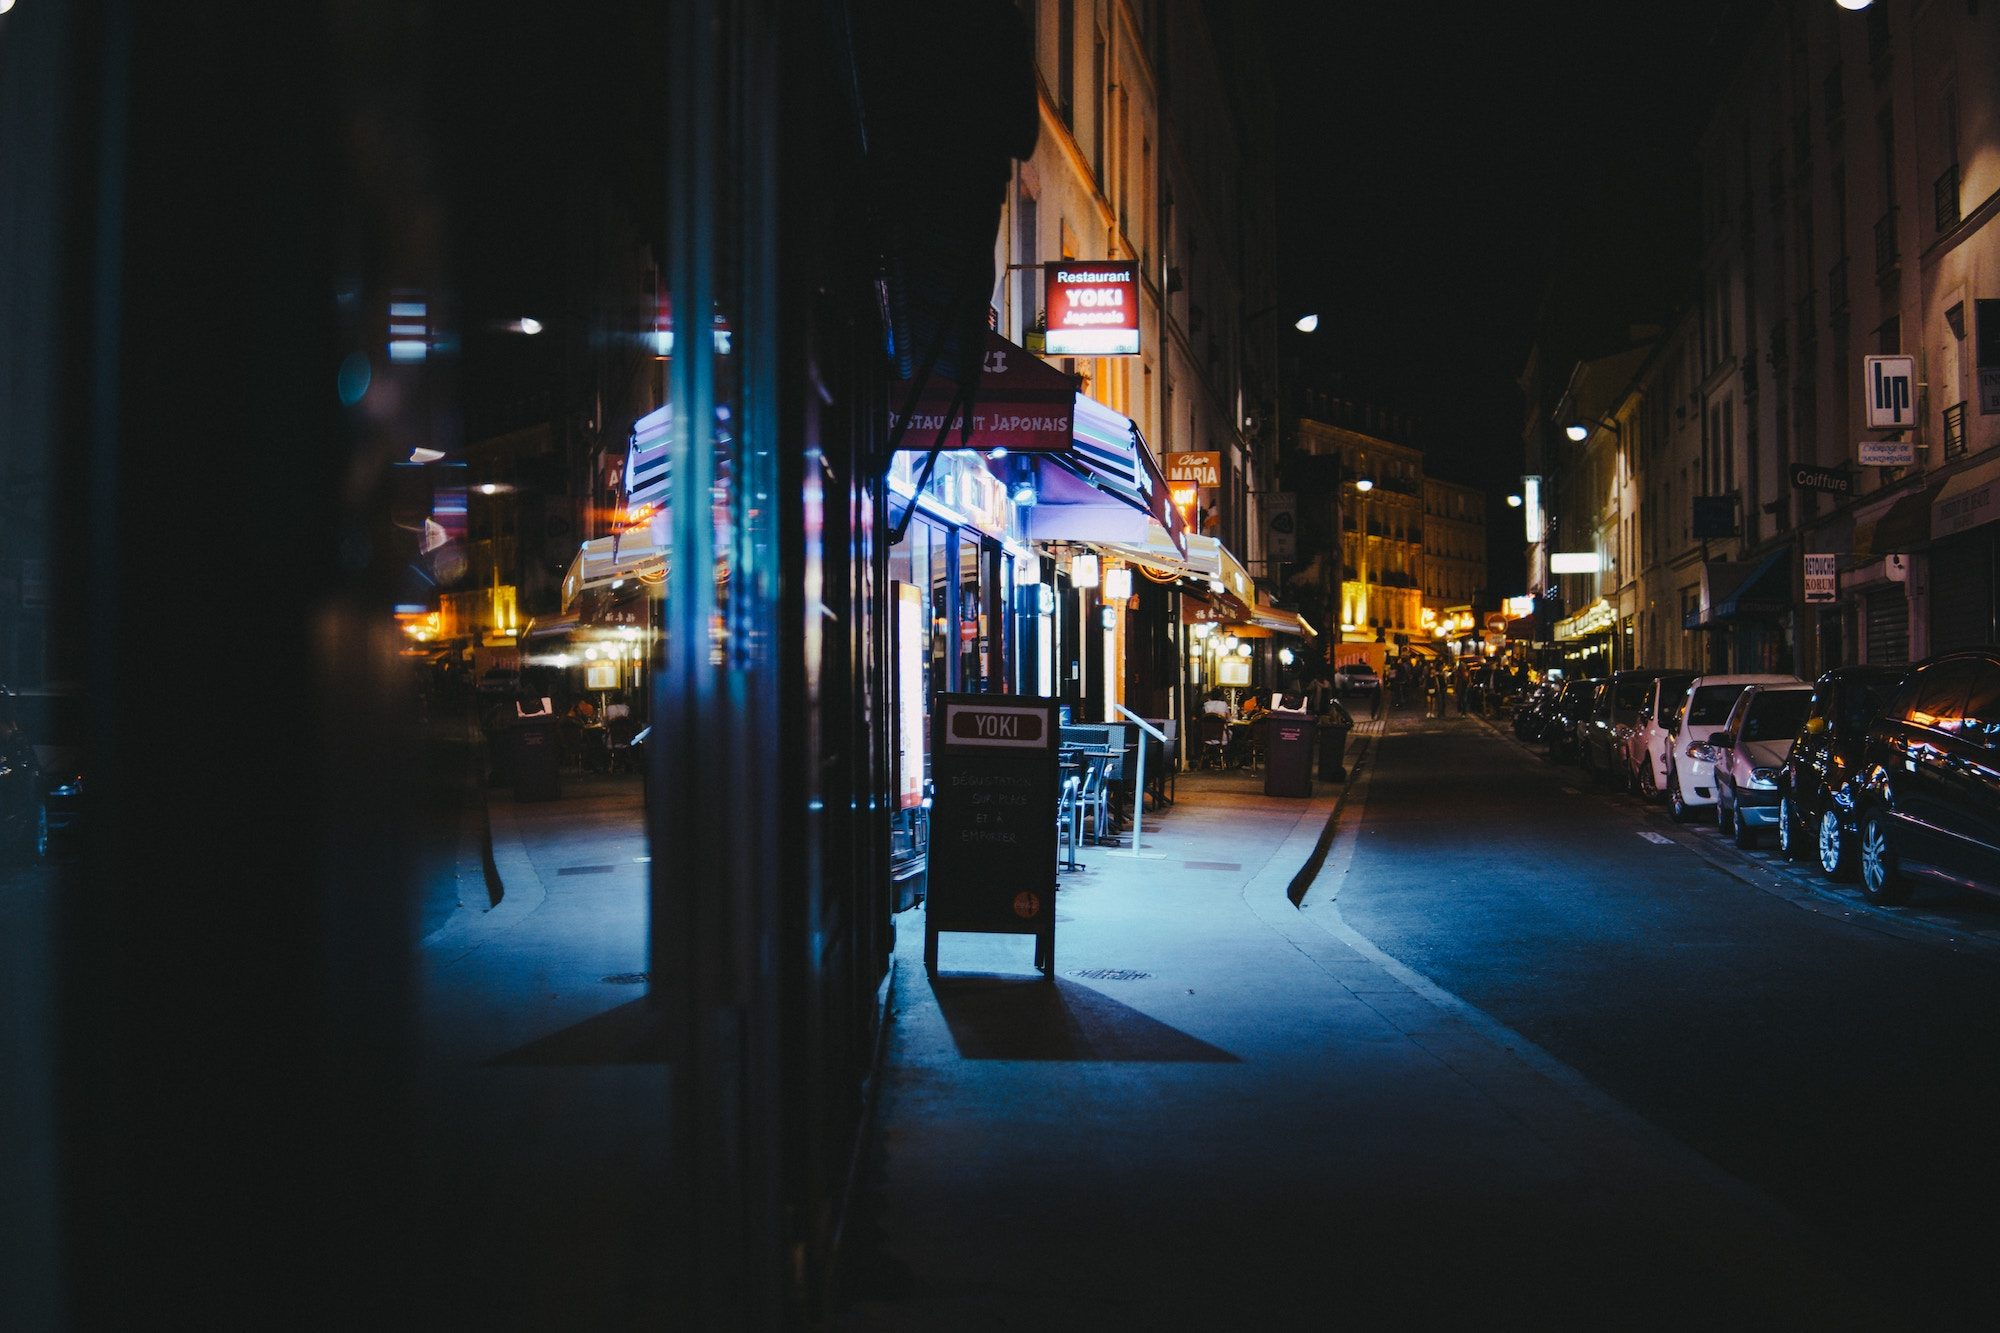 A night street scene in Paris of neon shop signs lining on empty street.